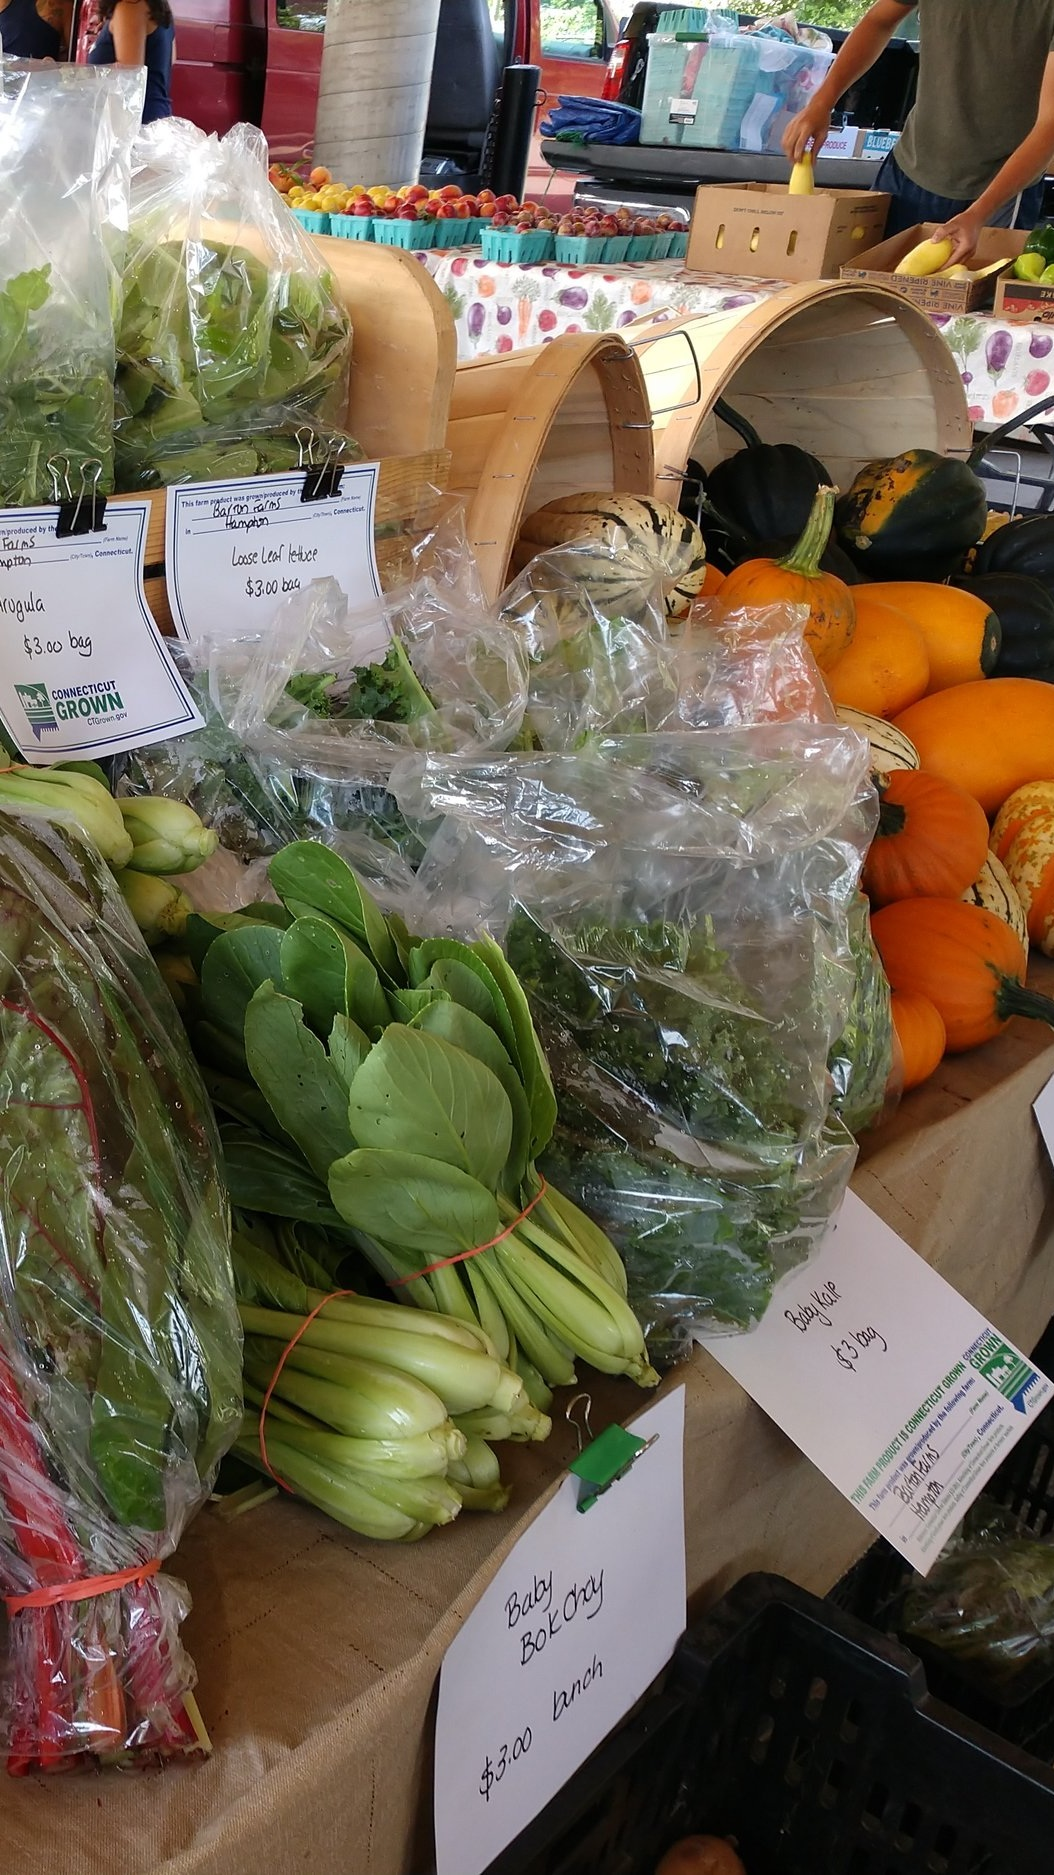 What is CSA? - Community Supported Agriculture (CSA) has become popular throughout the US. When you buy into a CSA you buy a share of the harvest. Each week you pick up your share, allowing you to enjoy fresh produce and locally made products. Many local farms offer CSA's, but many can lack the diversity of items you may like to enjoy. Our solutions is to have multiple farmers contributing to one box. From fruits and veggies to breads, soaps, jams, and flowers. We offer a diverse selection to you every week! Our CSA allows you to get your money's worth while enjoying what your local farmers have in season.